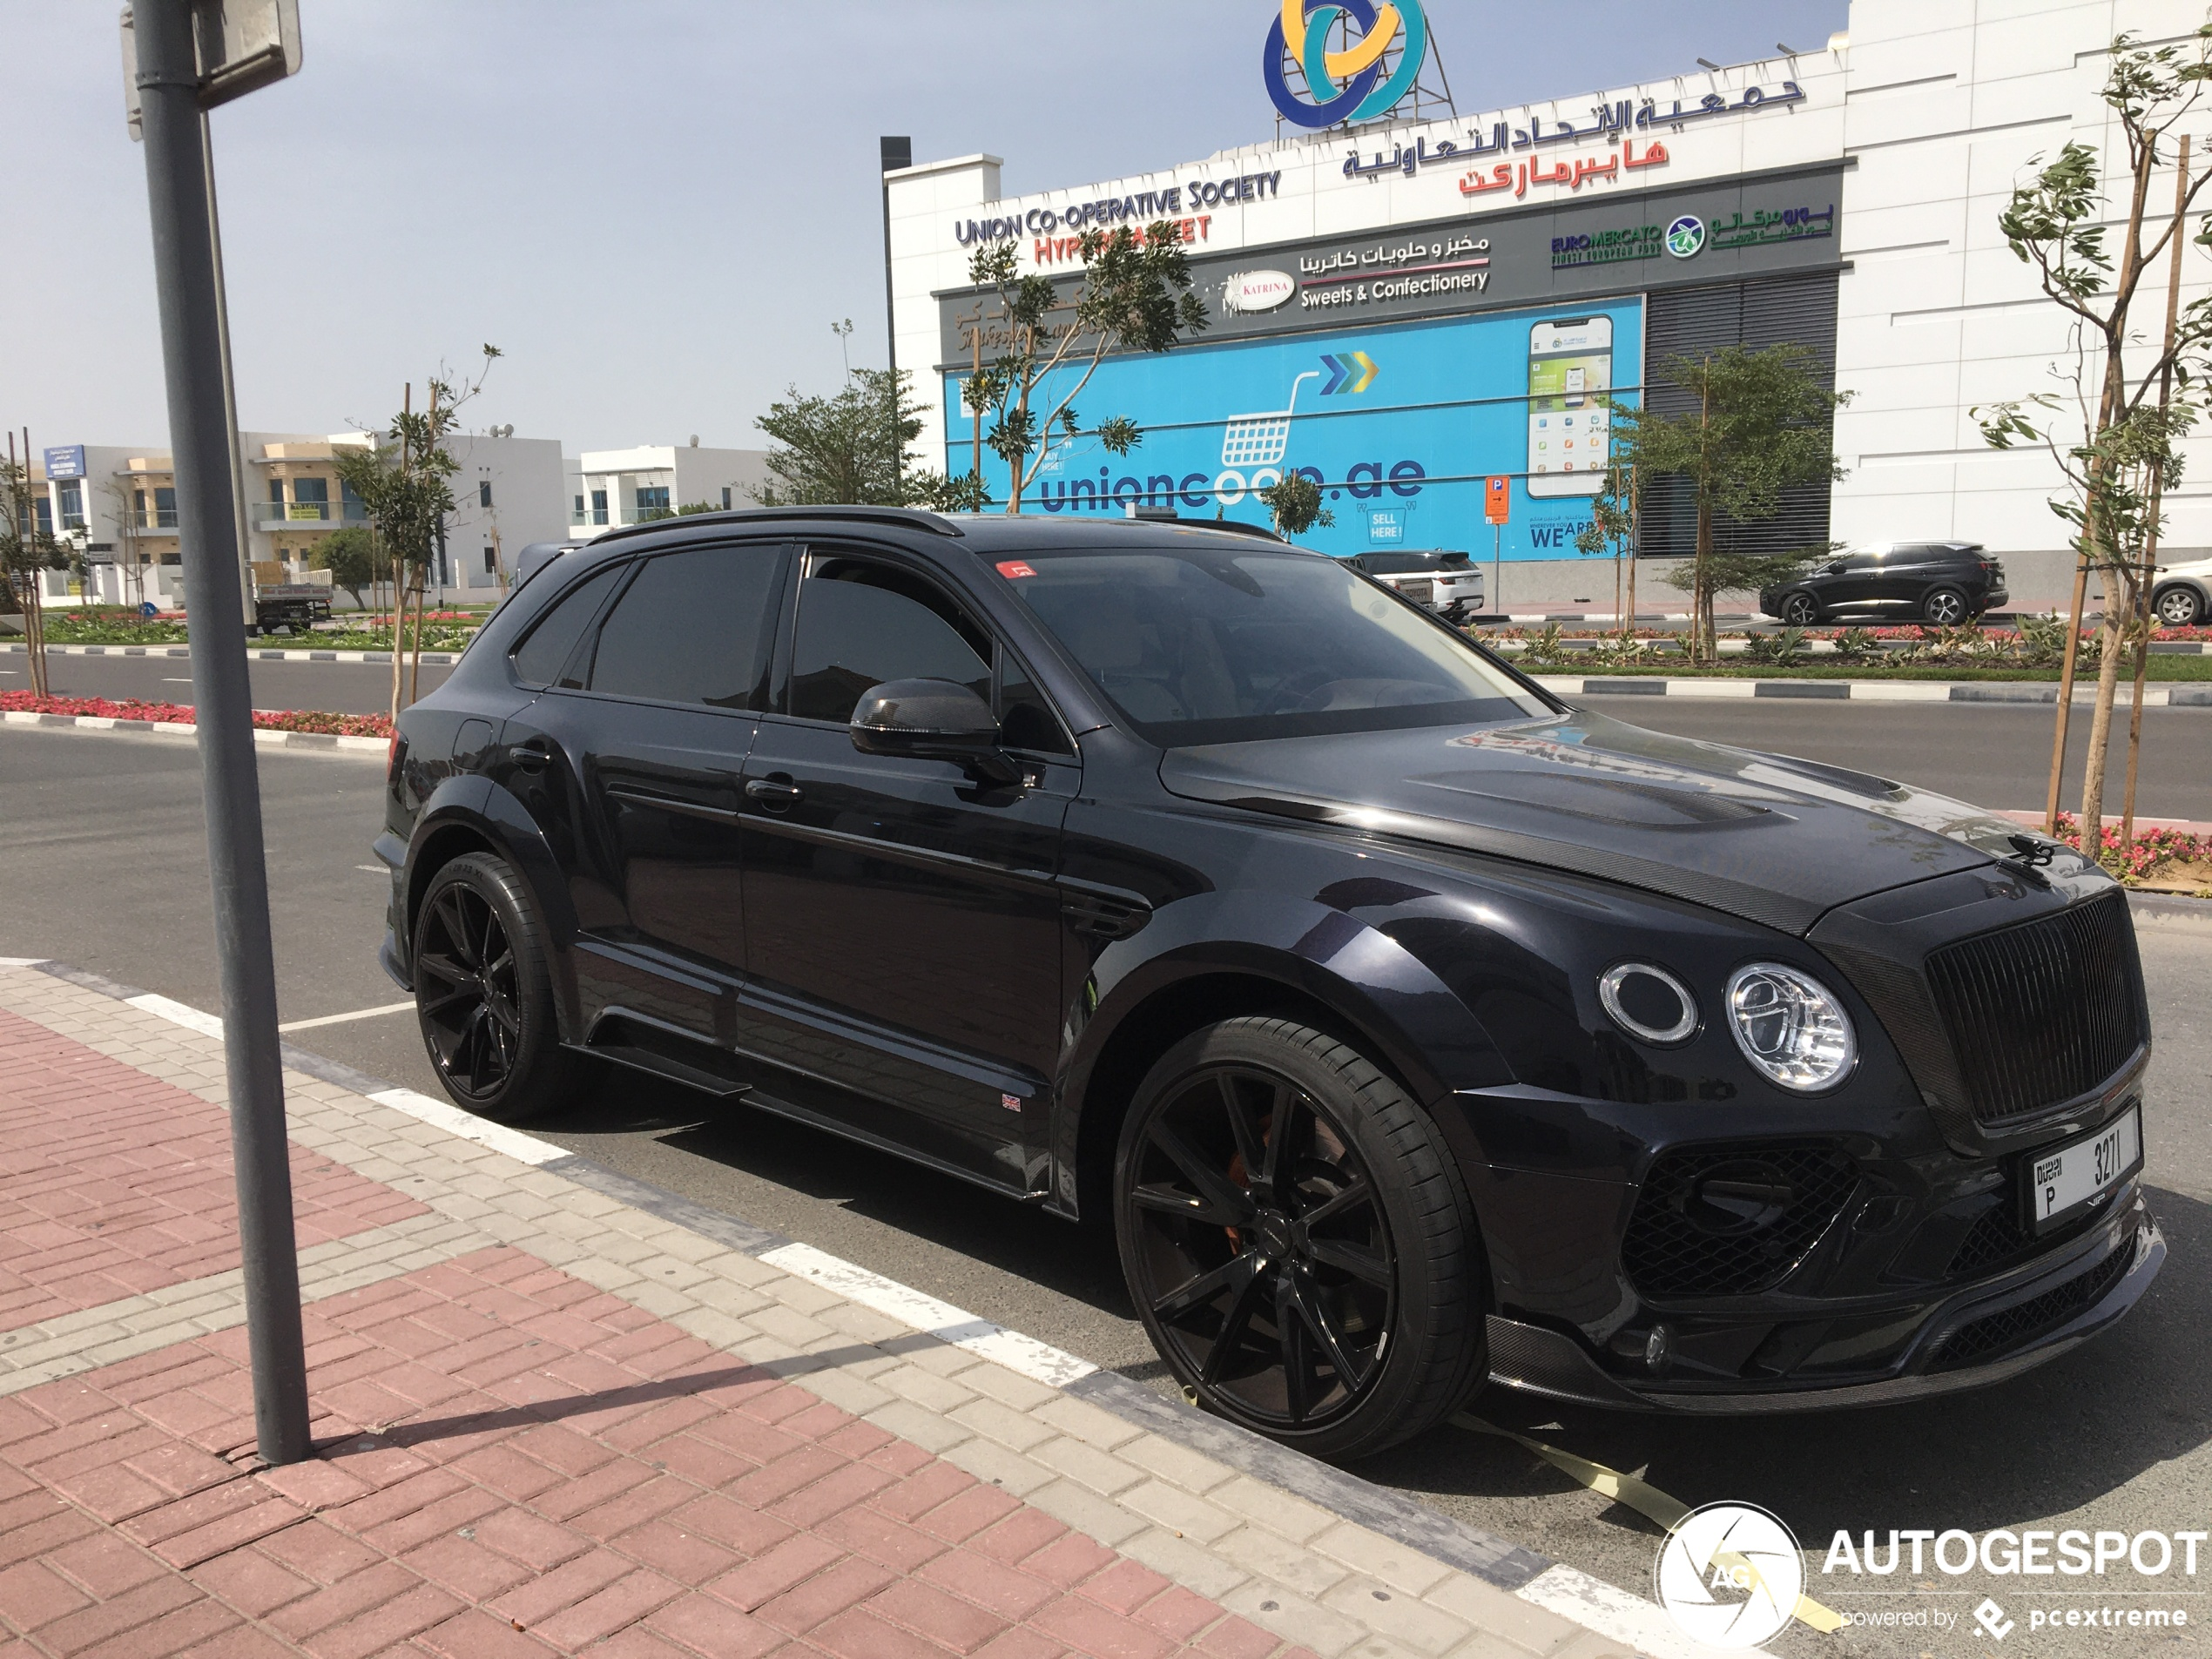 Bentley Mansory Bentayga 10 April 2020 Autogespot